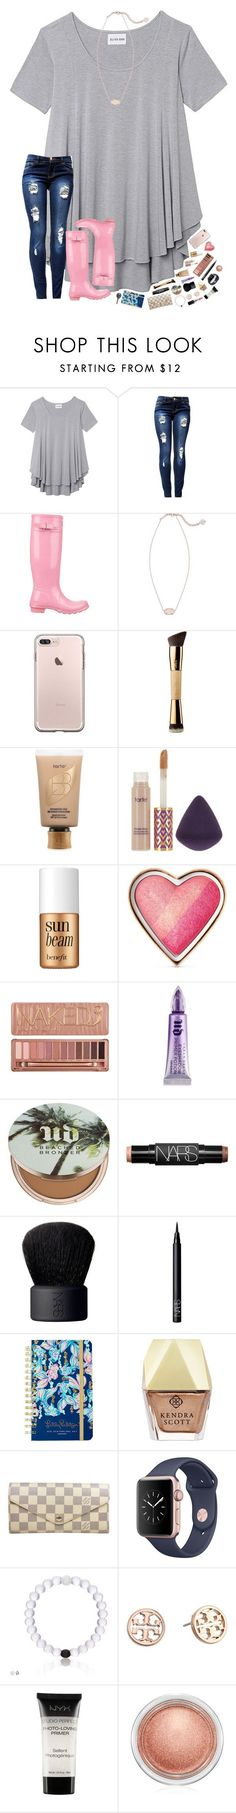 """new uggs>>>>>>>>>>"" by hopemarlee ❤ liked on Polyvore featuring Olive + Oak, Hunter, Kendra Scott, tarte, Benefit, Too Faced Cosmetics, Urban Decay, NARS Cosmetics, Lilly Pulitzer and Louis Vuitton"